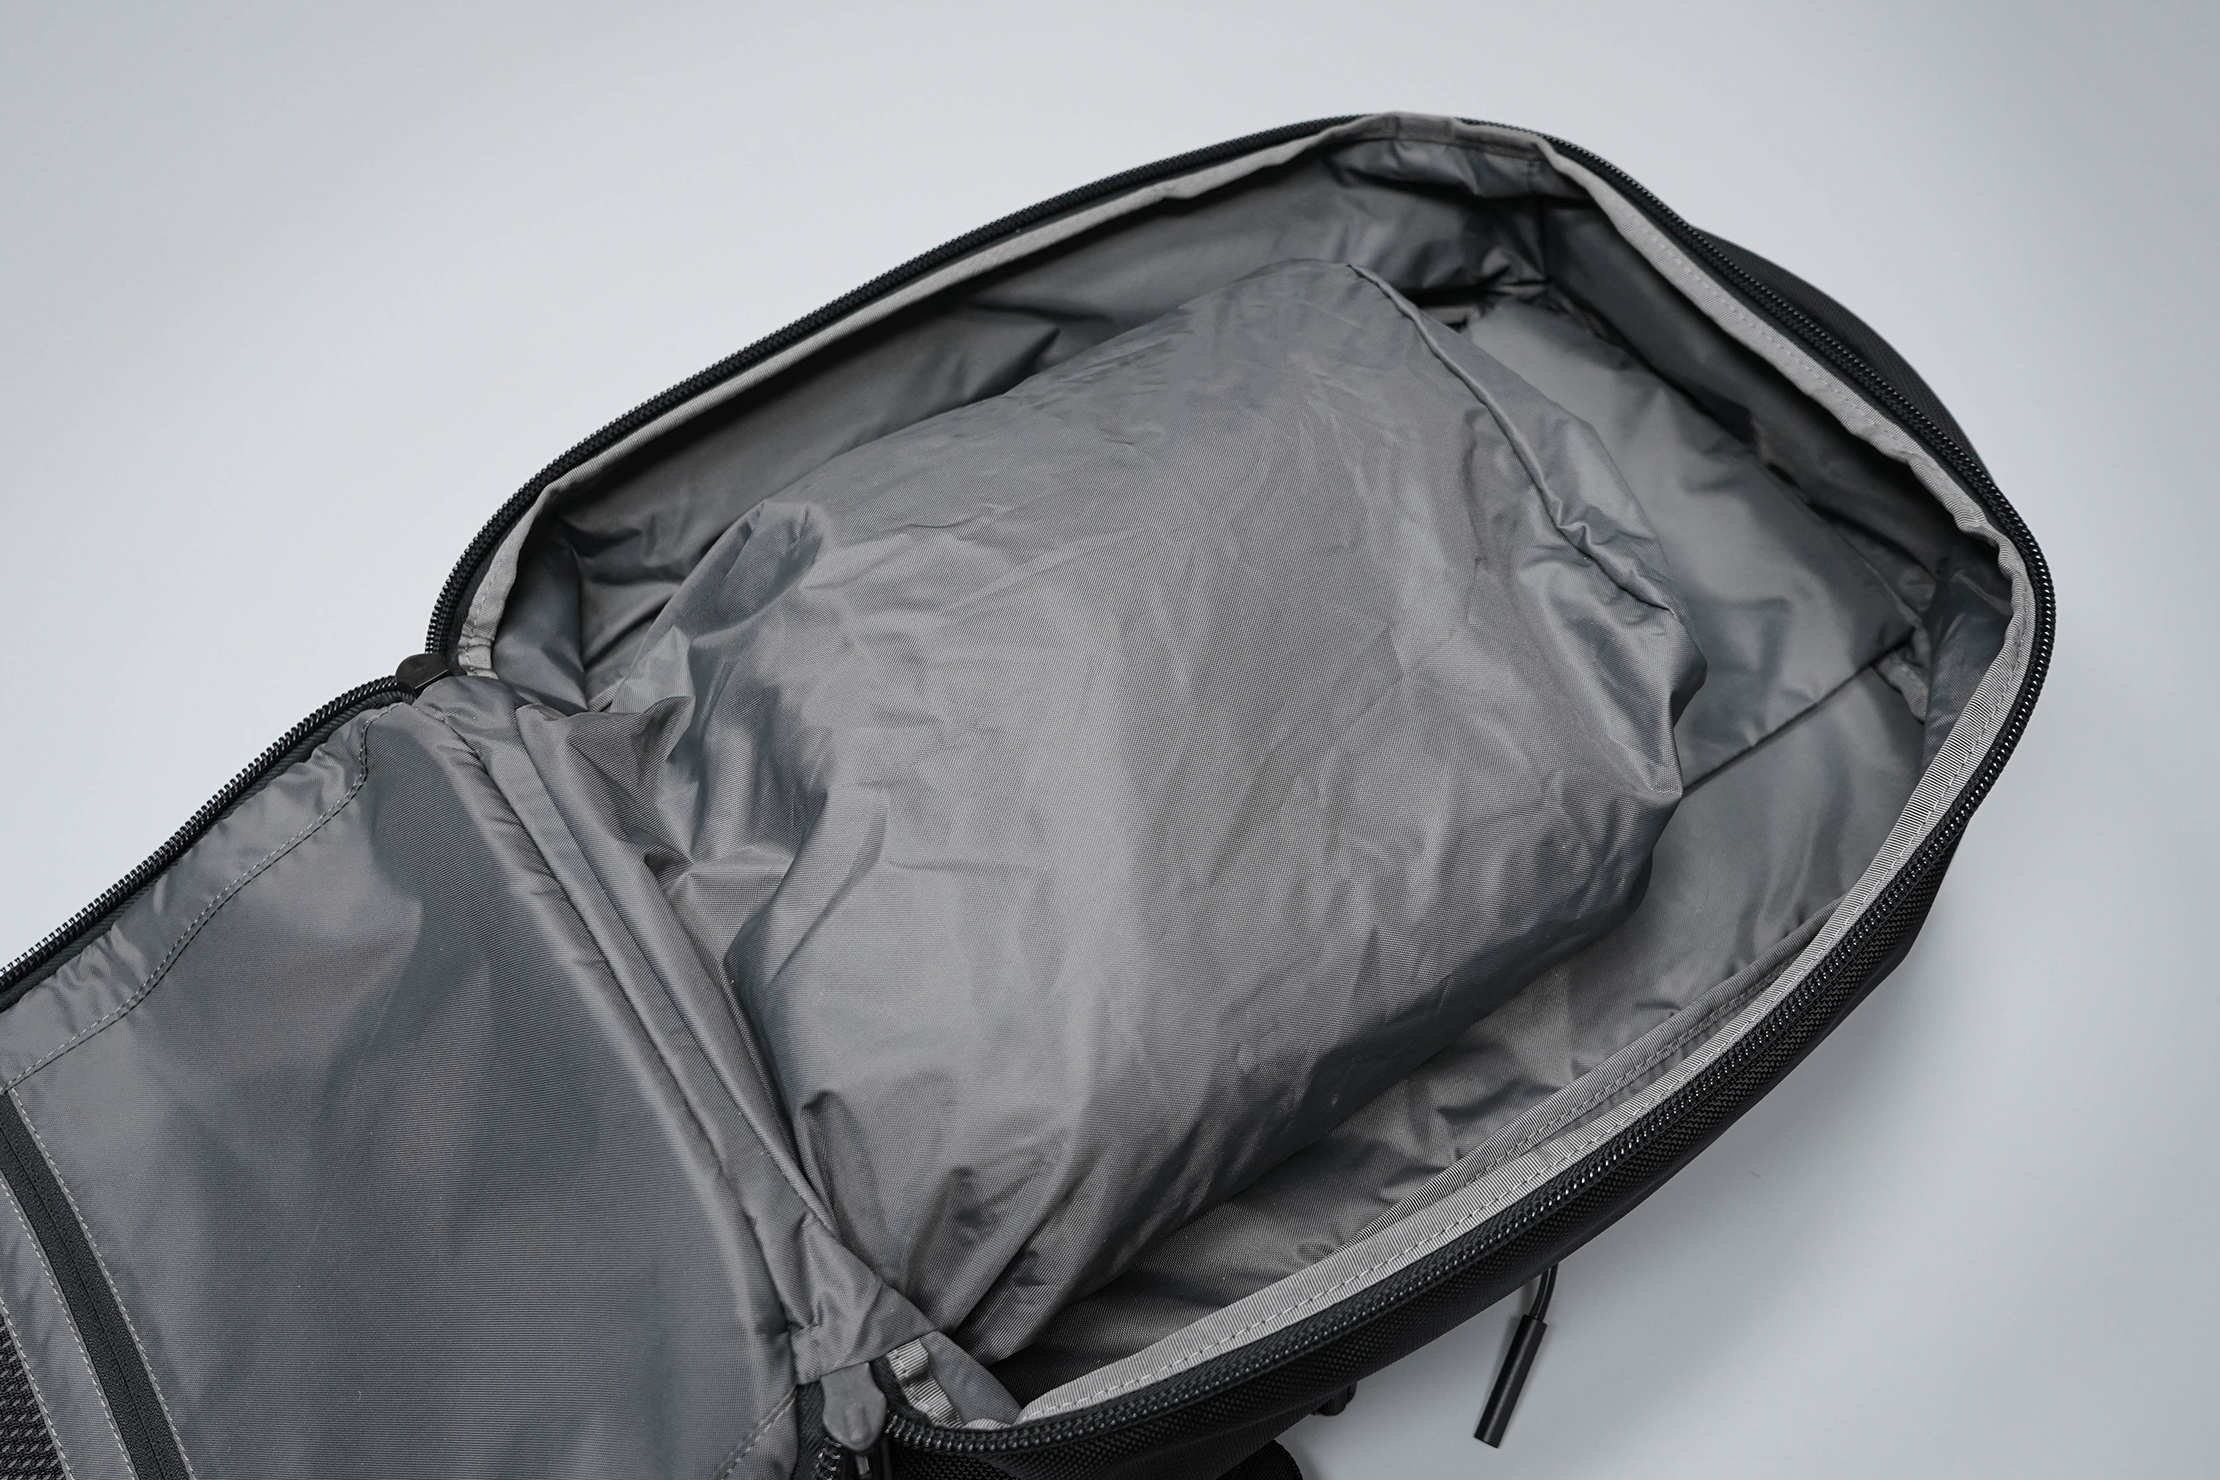 Aer Travel Pack 2 Small Shoe Bag Expanded